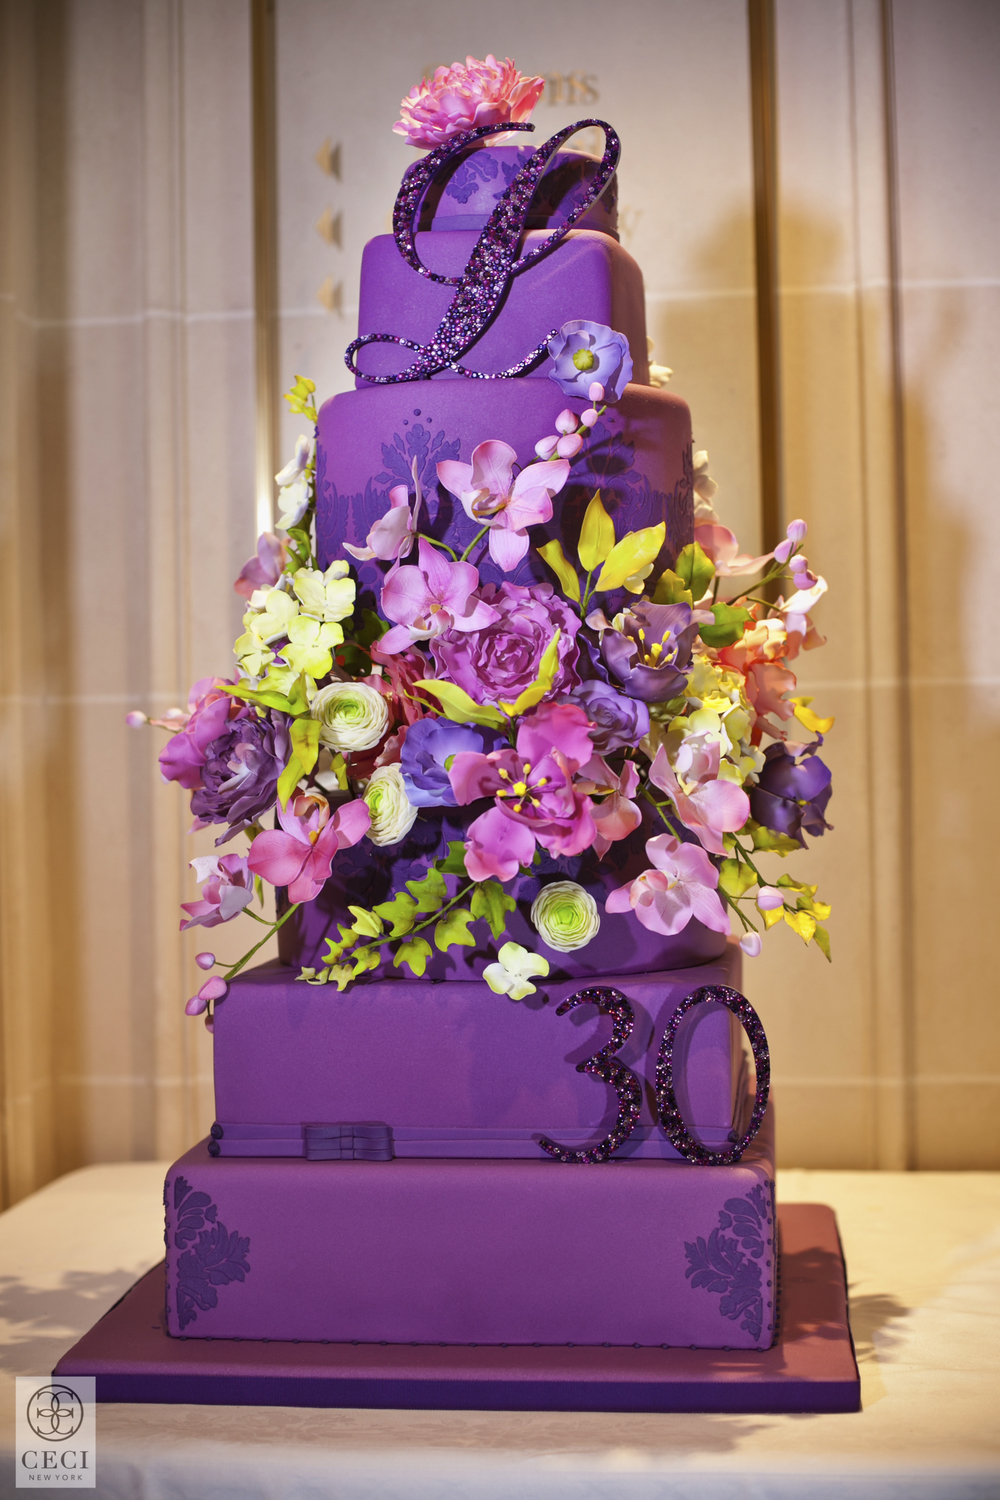 ceci_new_york_lucas_somoza_purple_regal_wediding_birthday_commitment_ceremony_gold-34.jpg